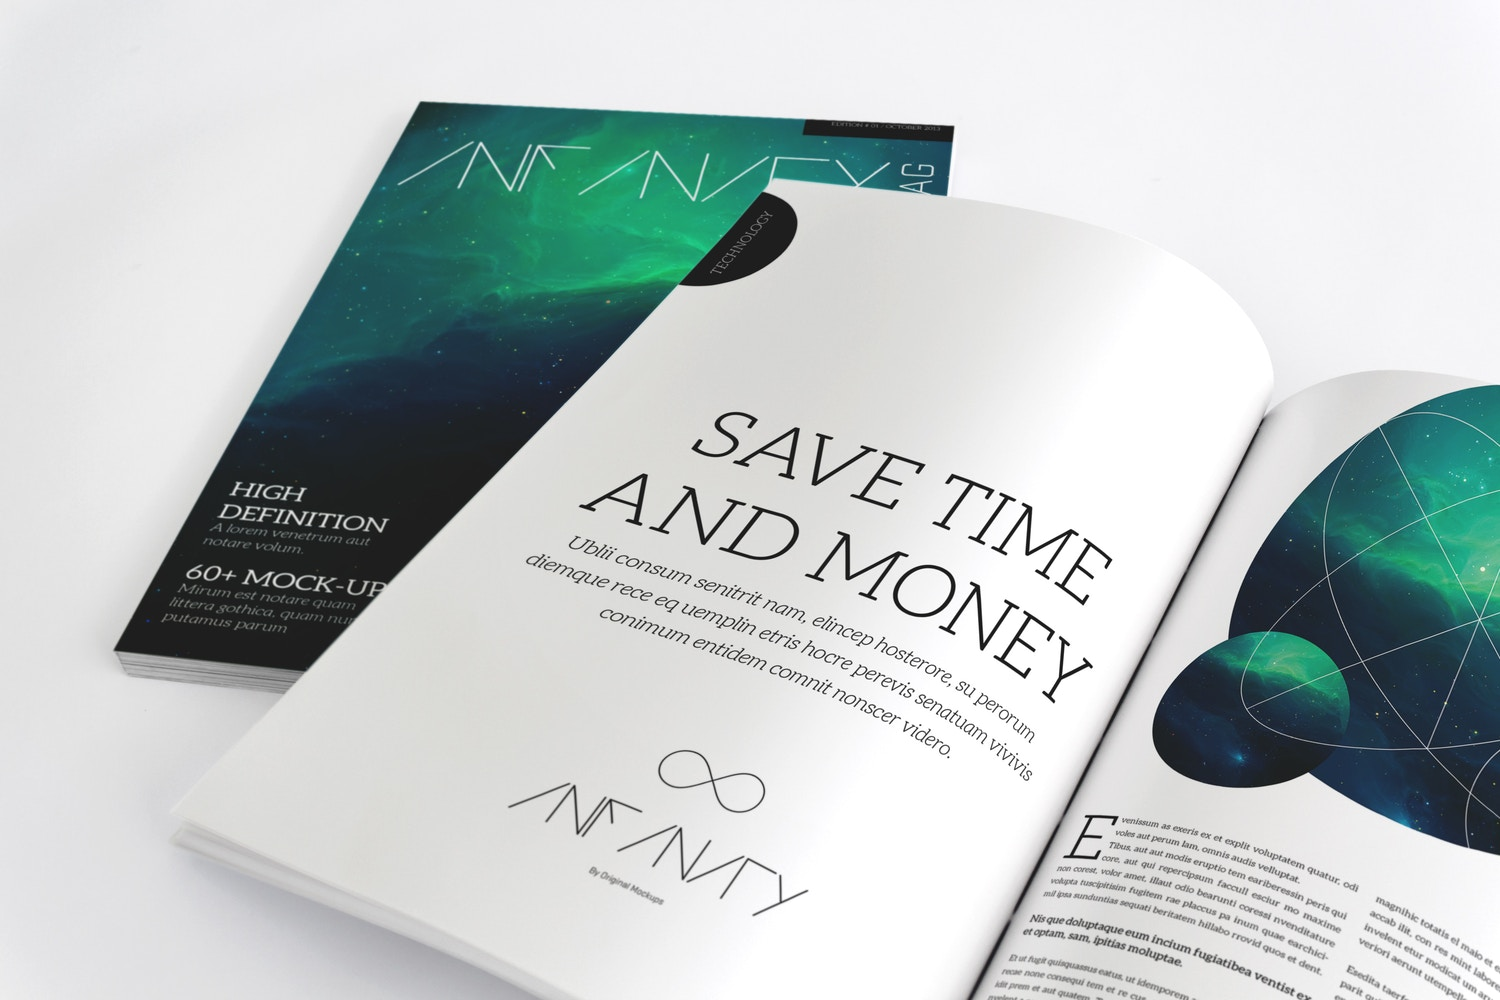 A4 Magazine Mockup for Spread Page & Cover 02 by Original Mockups on Original Mockups